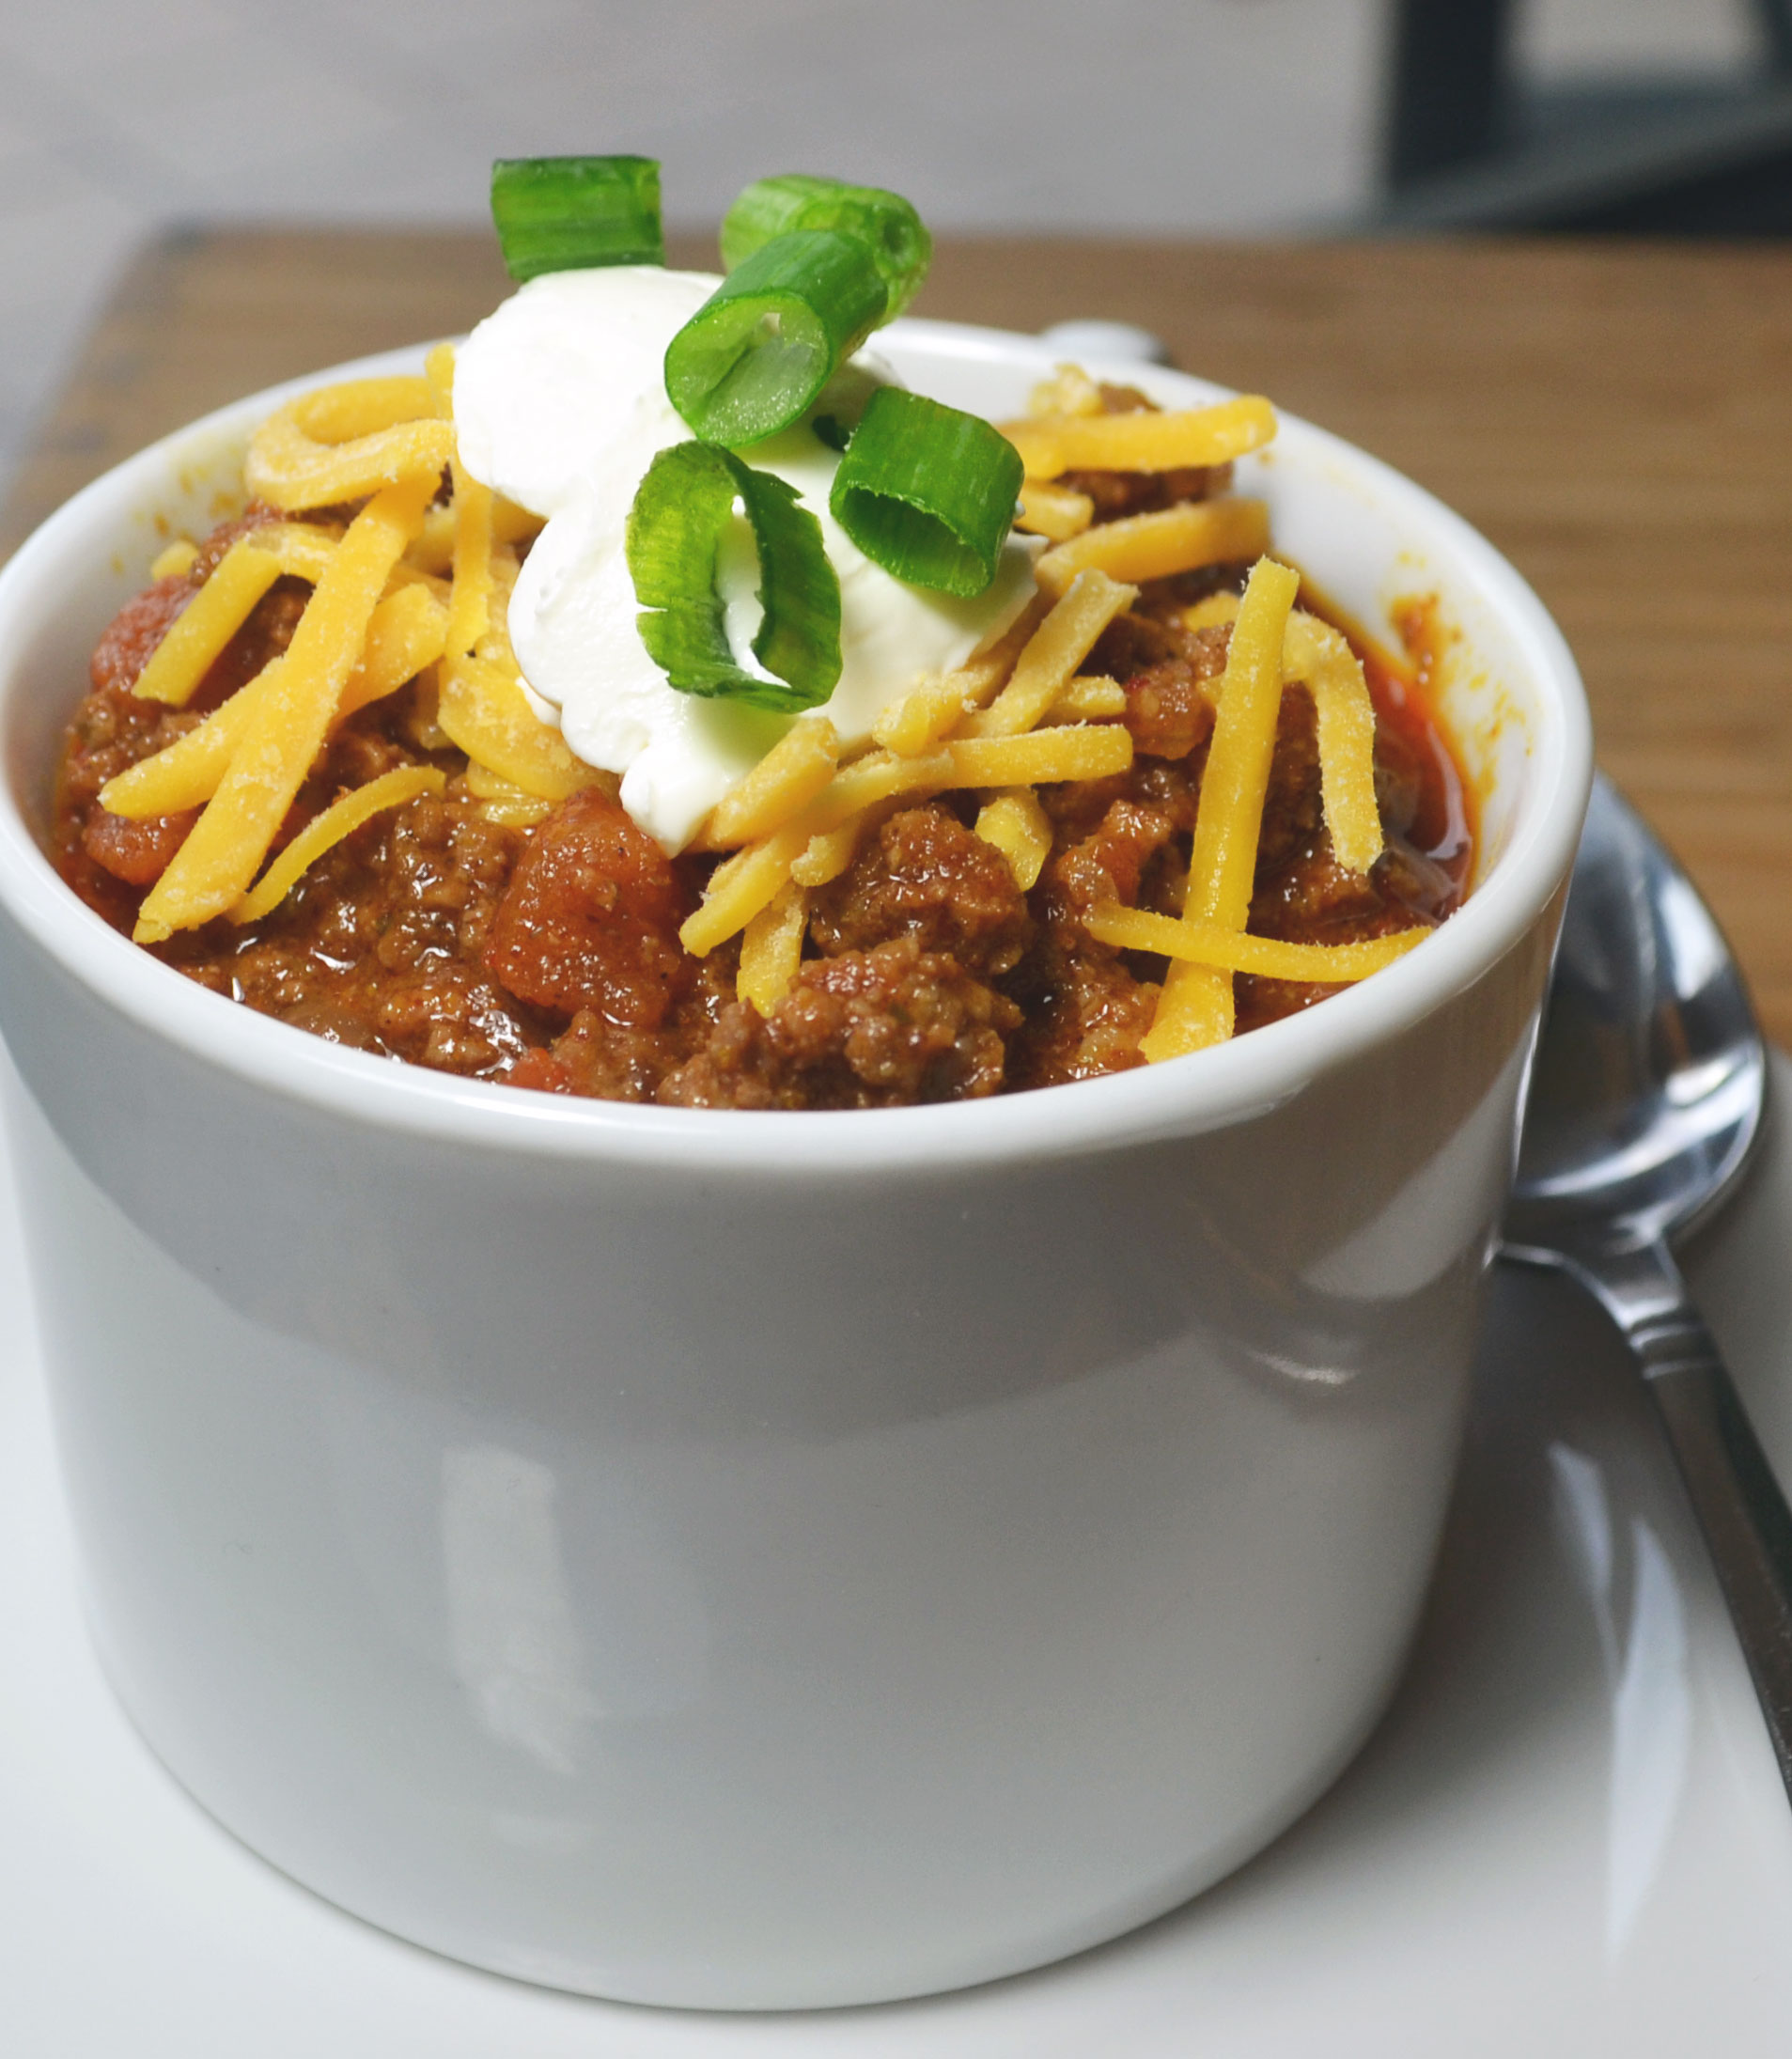 The Story of Texas Cafe on the Bullock Museum's second floor serves Texas favorites, including favorites such as chili and baked potatoes.